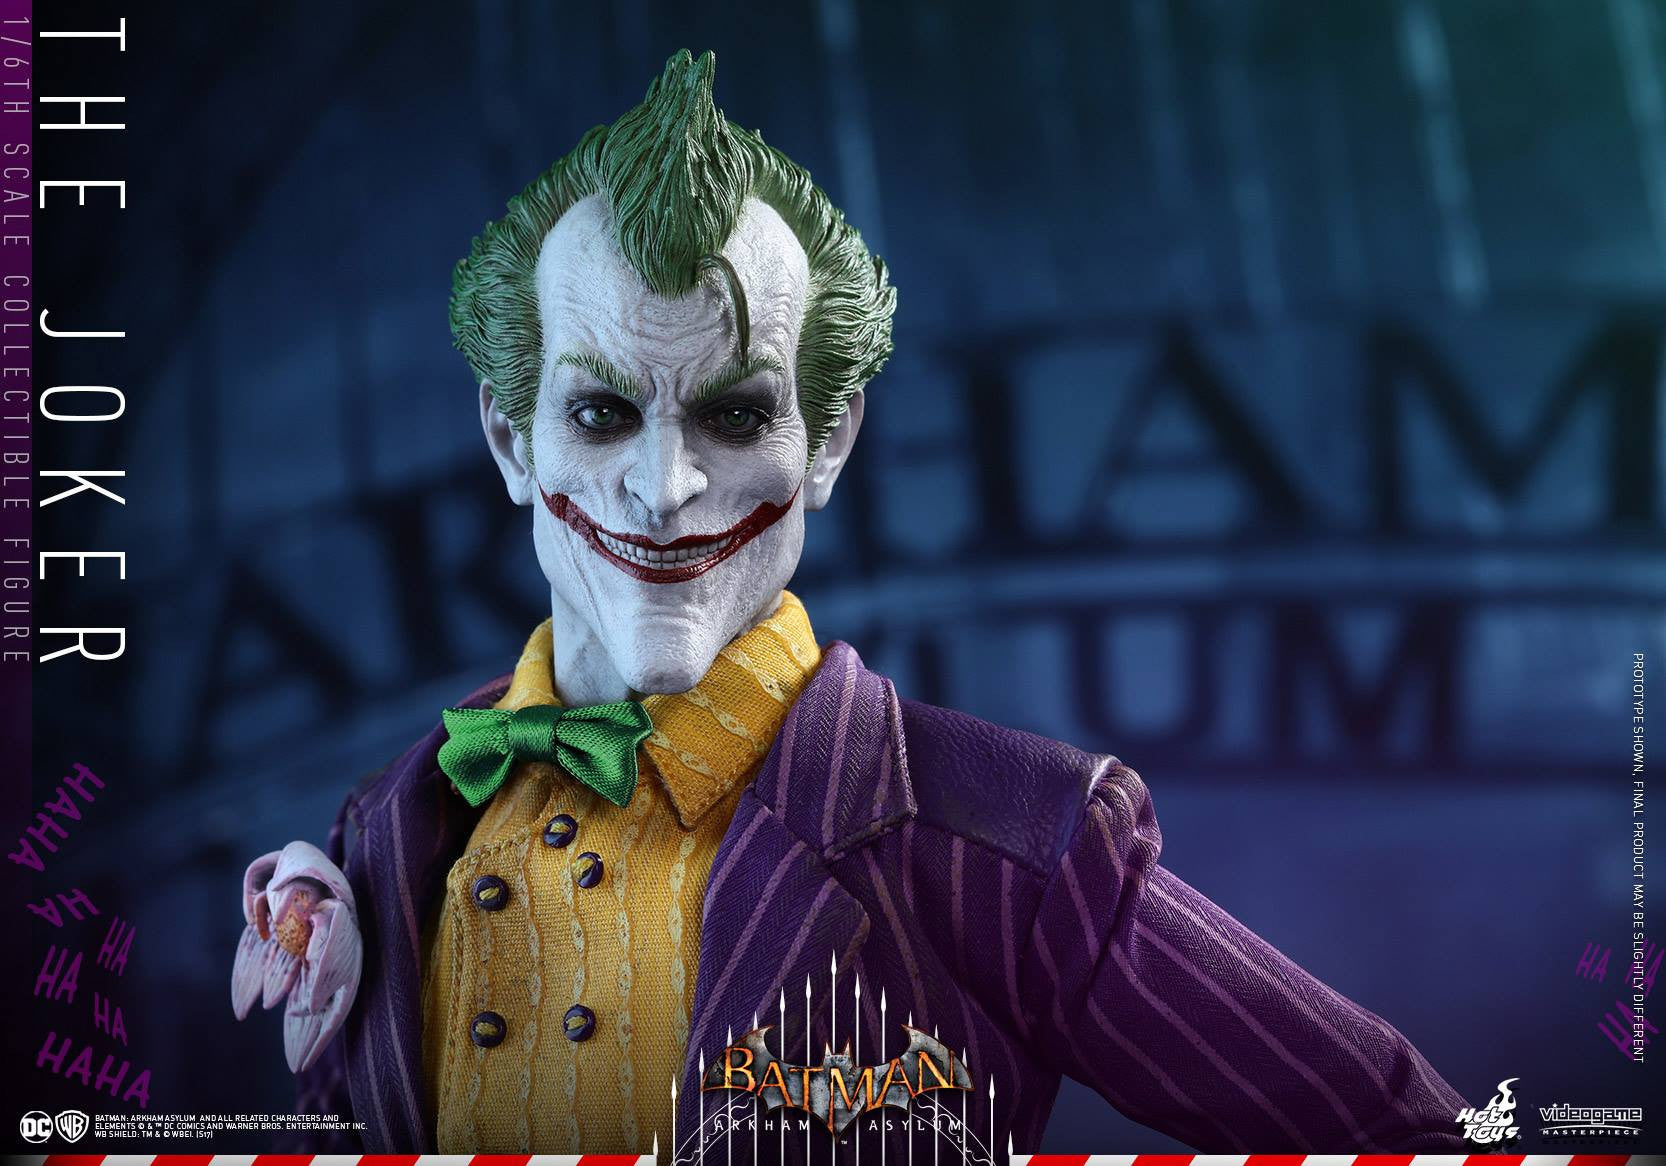 Hot Toys - VGM27 - Batman: Arkham Asylum - The Joker - Marvelous Toys - 9